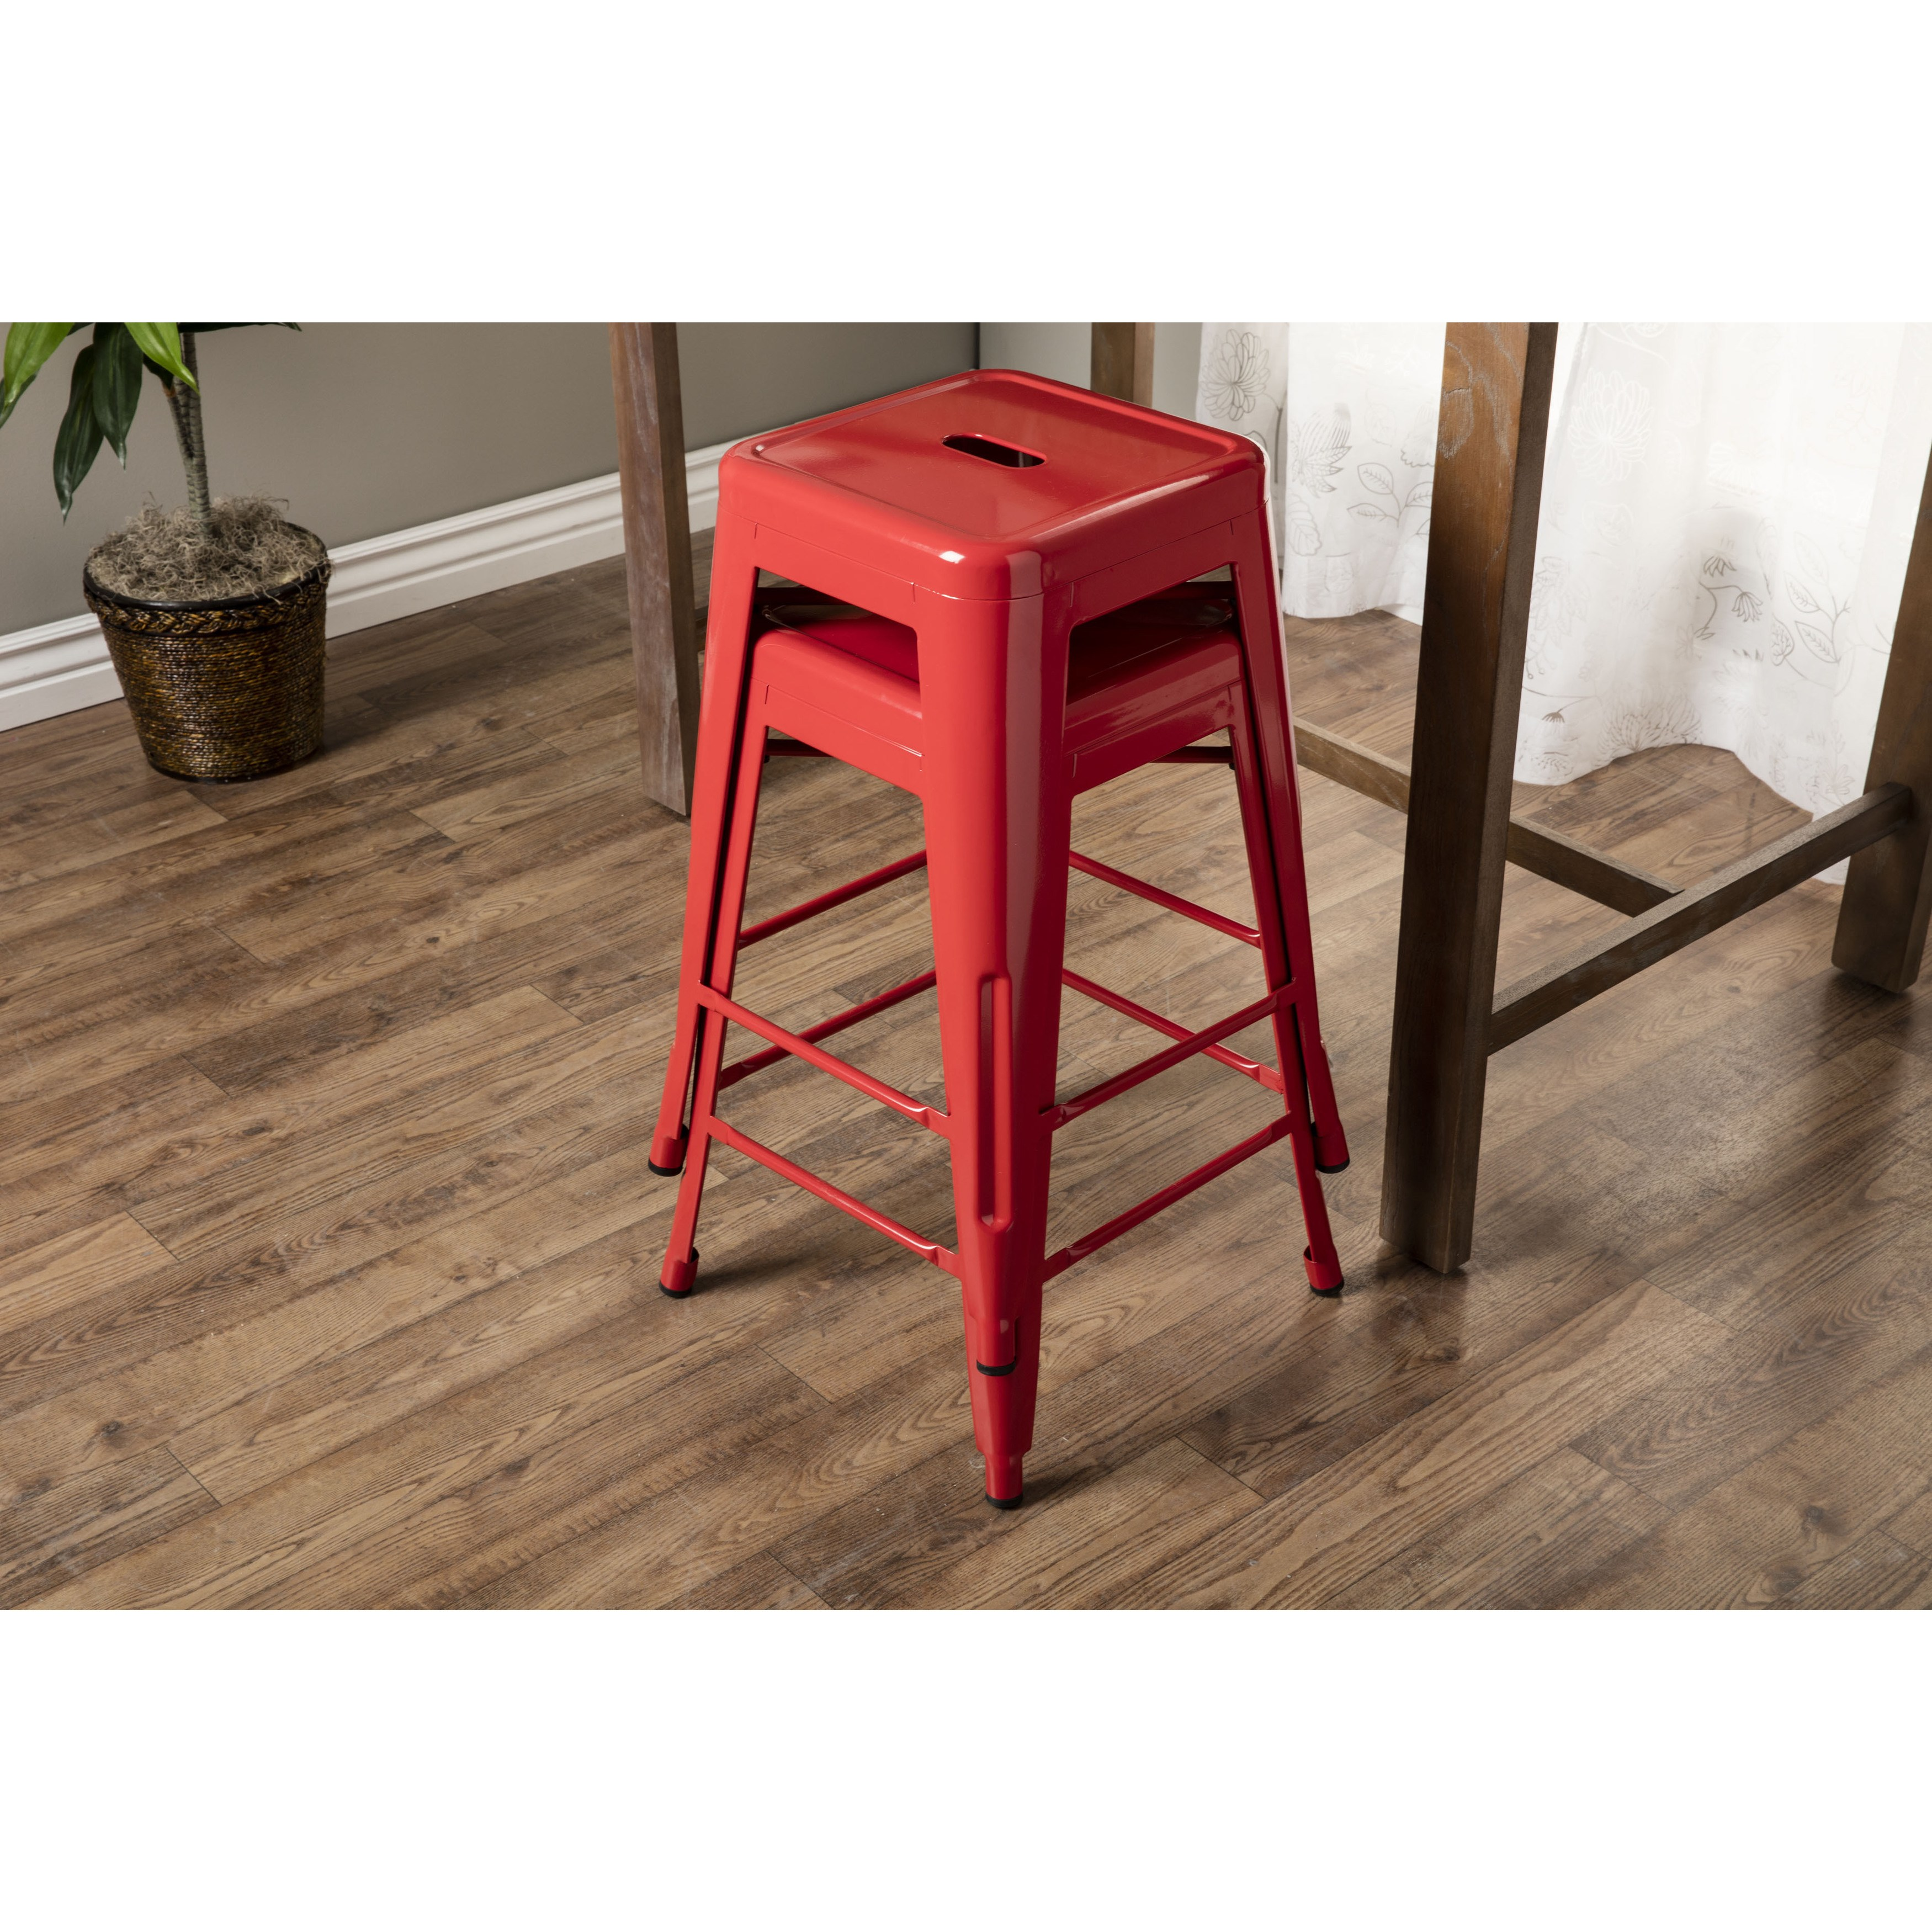 aluminum bar stools without backs photo - 9